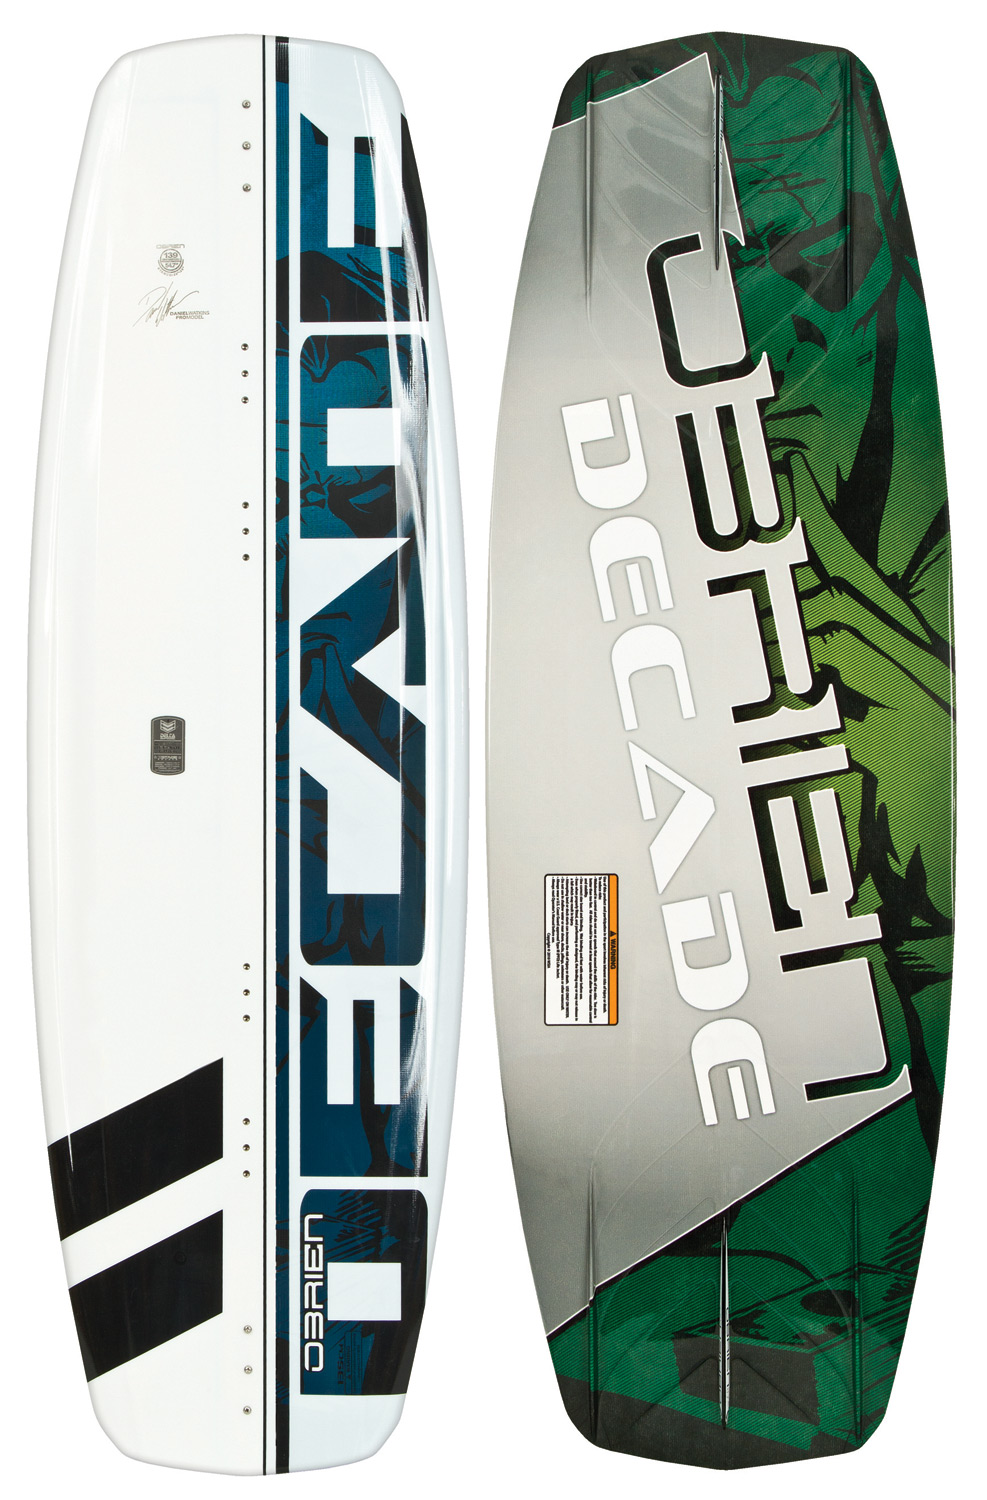 "Wake The O'Brien Decade Impact Wakeboard is quickly becoming the board of choice for both freeride and competition riders! The Decade pushes the envelope of thought and progression in wakeboard design. The variable edge profile is fat through the center 14"" of the board, and quickly tapers to a more refined edge from the boot position to the tips. This gives the board a unique float feel when centered, transferring to a deep-set edge when carving. The expanded Delta base keeps the water cleanly breaking off the tail of the board, decreasing rocker-induced drag and providing optimum release off the wake. The molded fins are as thin as possible for minimal resistance and optimum control, and have been combined with a 3-stage rocker for just the right amount of kick. The Clean V bottom through the center of the board makes sure your landings are buttery soft.* This board has some minor cosmetic defects-nothing that affects the performance * Variable edge profile * Expanded DELTA base * Rocker-induced drag * Molded fins * 3-stage rocker * Clean V bottom * Impact base * Wakeboard Binding Compatibility * Can accommodate bindings with a 6in binding plate * Can only accommodate a single mounting position option for Liquid Force bindings with a 8in binding plate and offers two positions for all other vendors - $194.95"